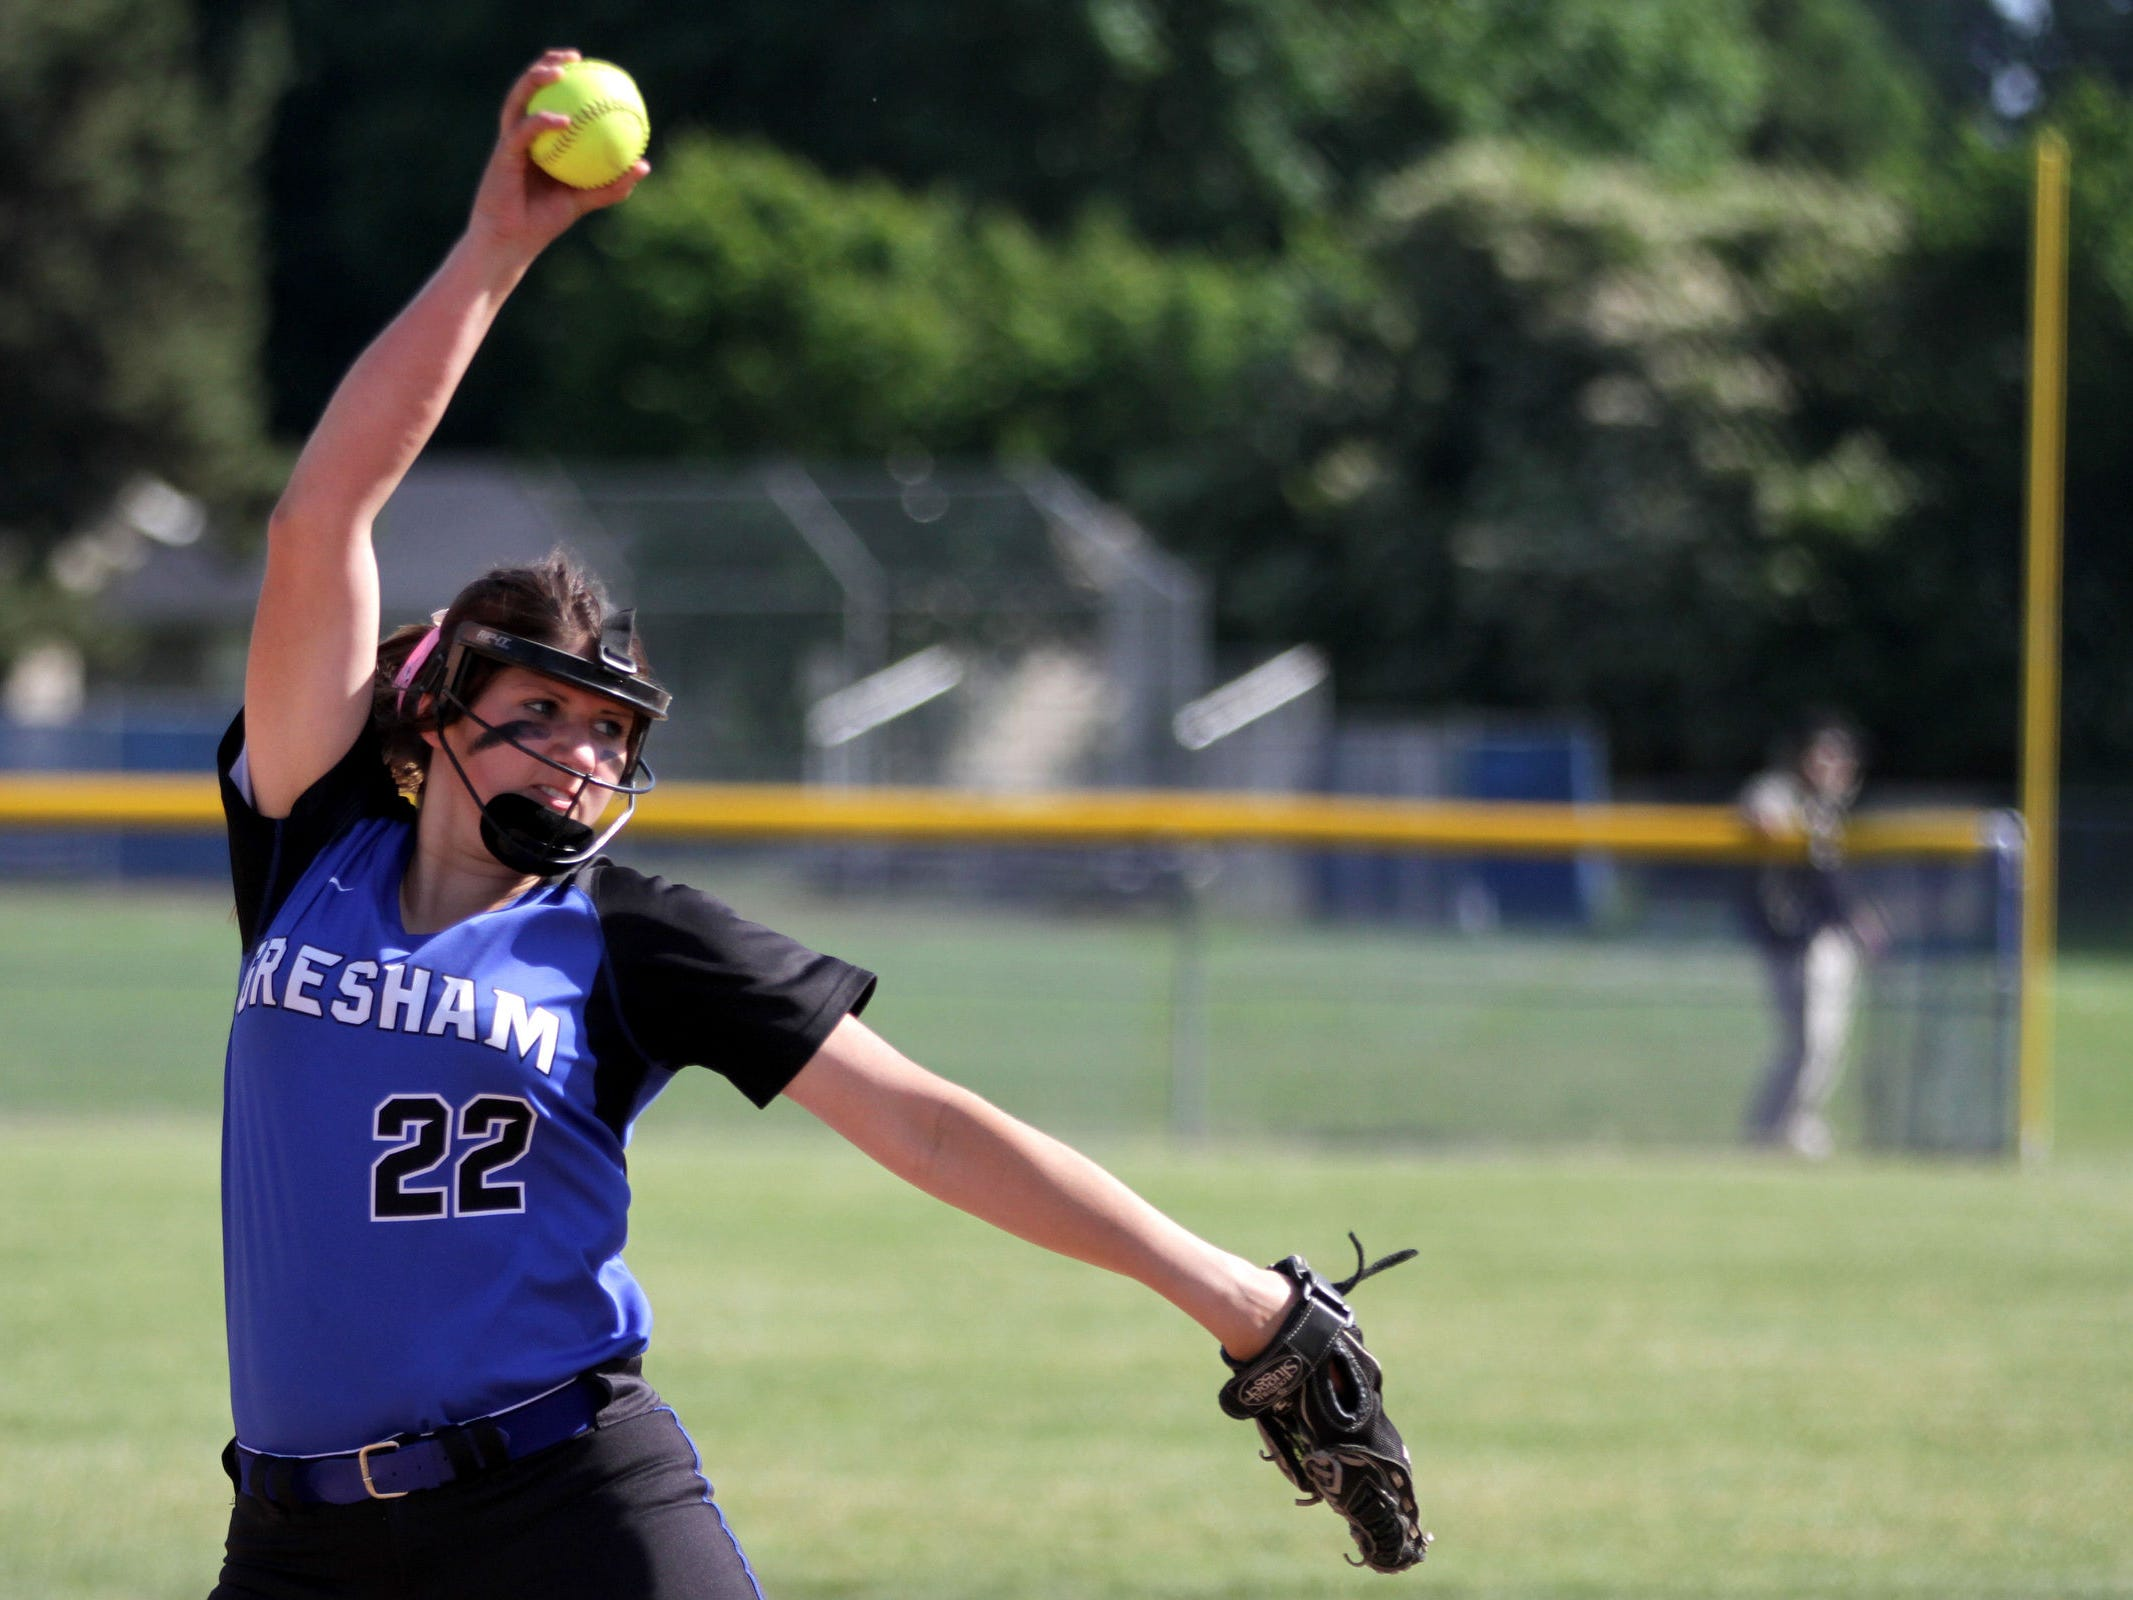 Gresham's Shianne Smith (22) pitches in the Gresham vs. McNary softball game, in the first round of the OSAA class 6A state playoffs, at McNary High School in Keizer on Monday, May 25, 2015. McNary won the game 11-7.